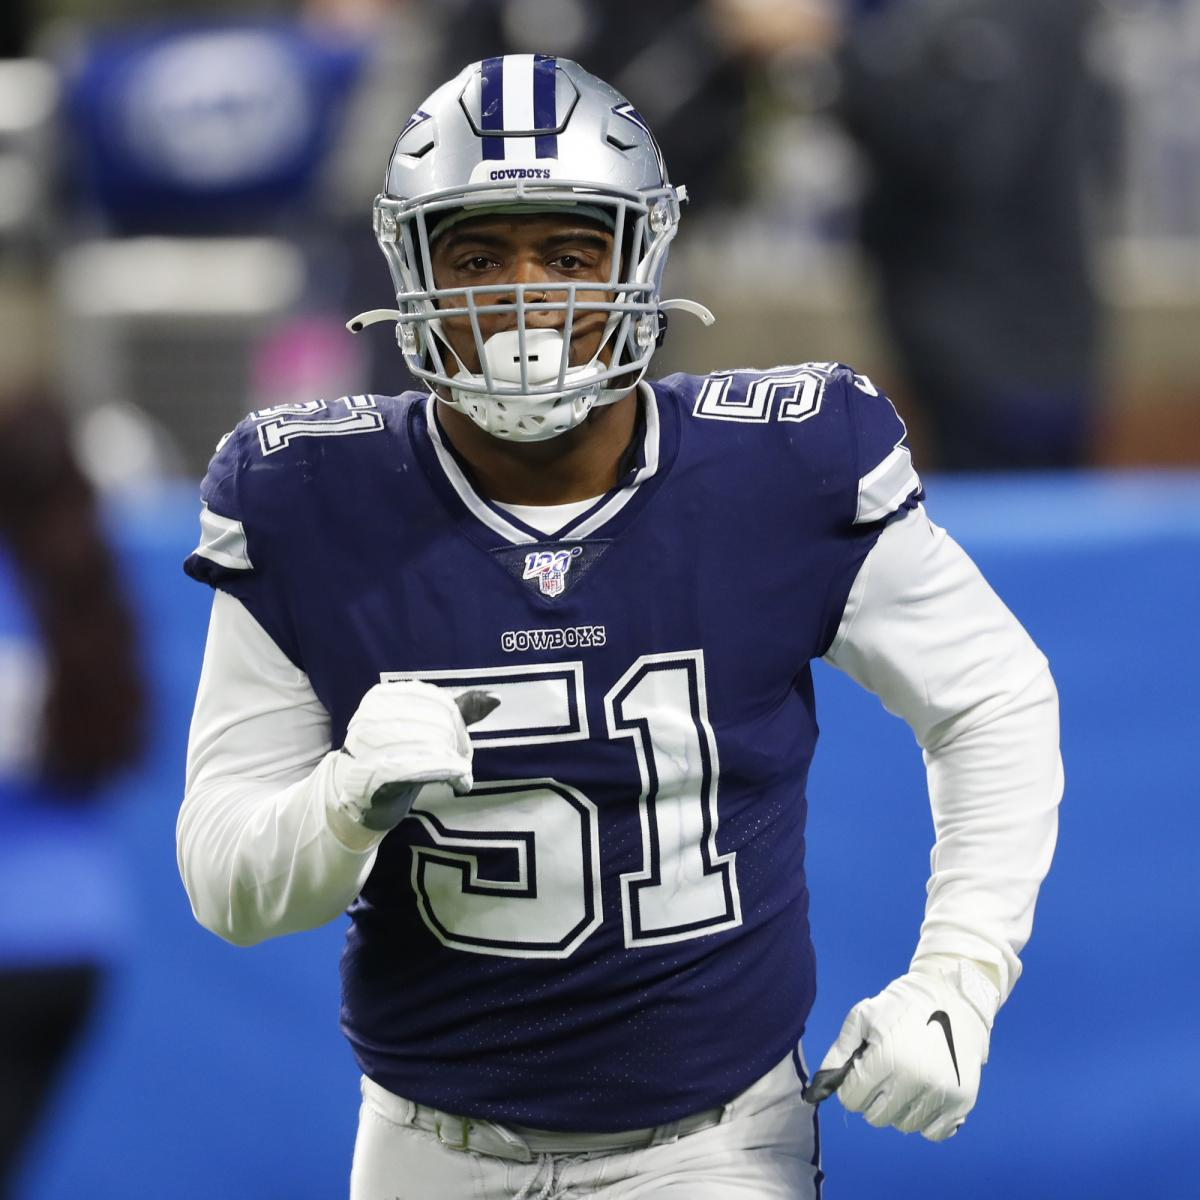 49ers Rumors: Ex-Cowboys DT Kerry Hyder Agrees to 1-Year Contract